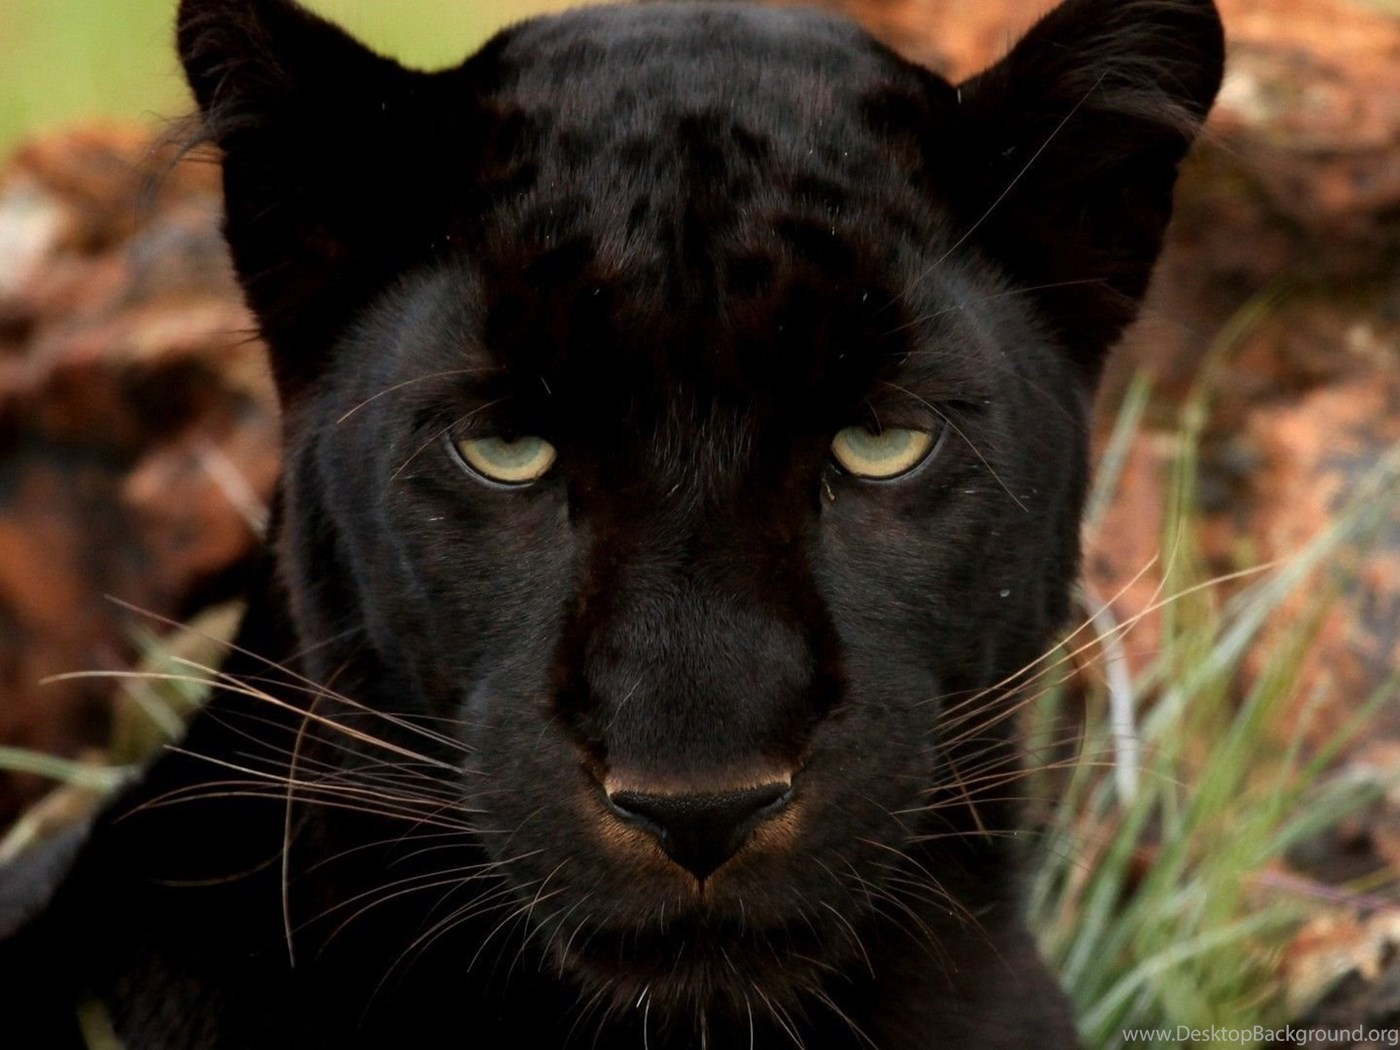 Black Panther Wallpapers Animal Wallpapers Desktop Background